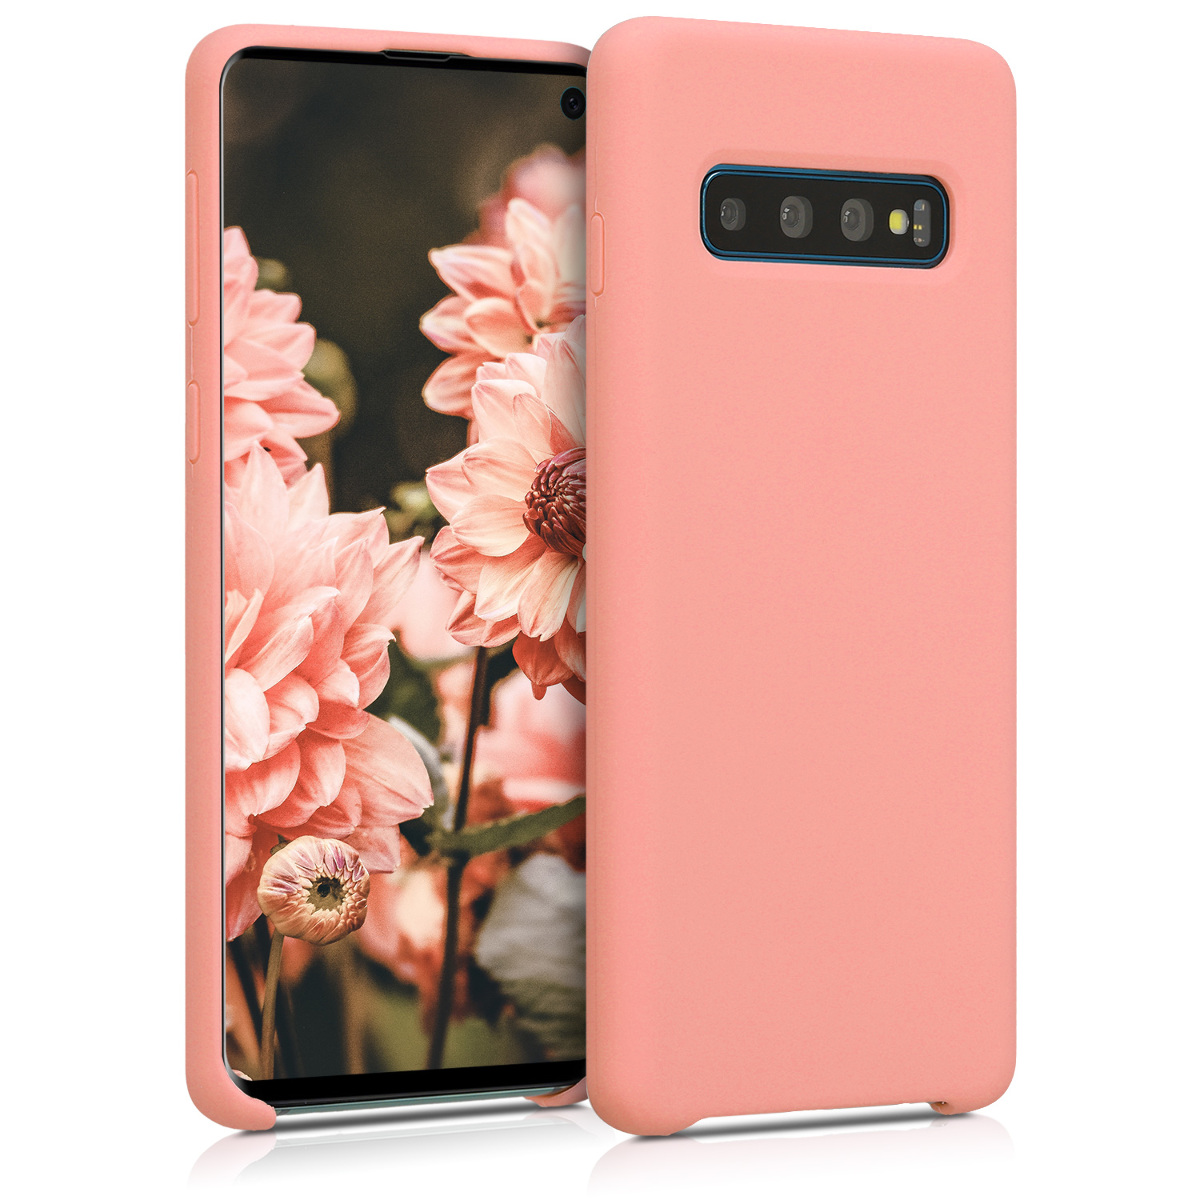 KW Θήκη Σιλικόνης Samsung Galaxy S10 - Soft Flexible Rubber - Coral Matte (47732.56)